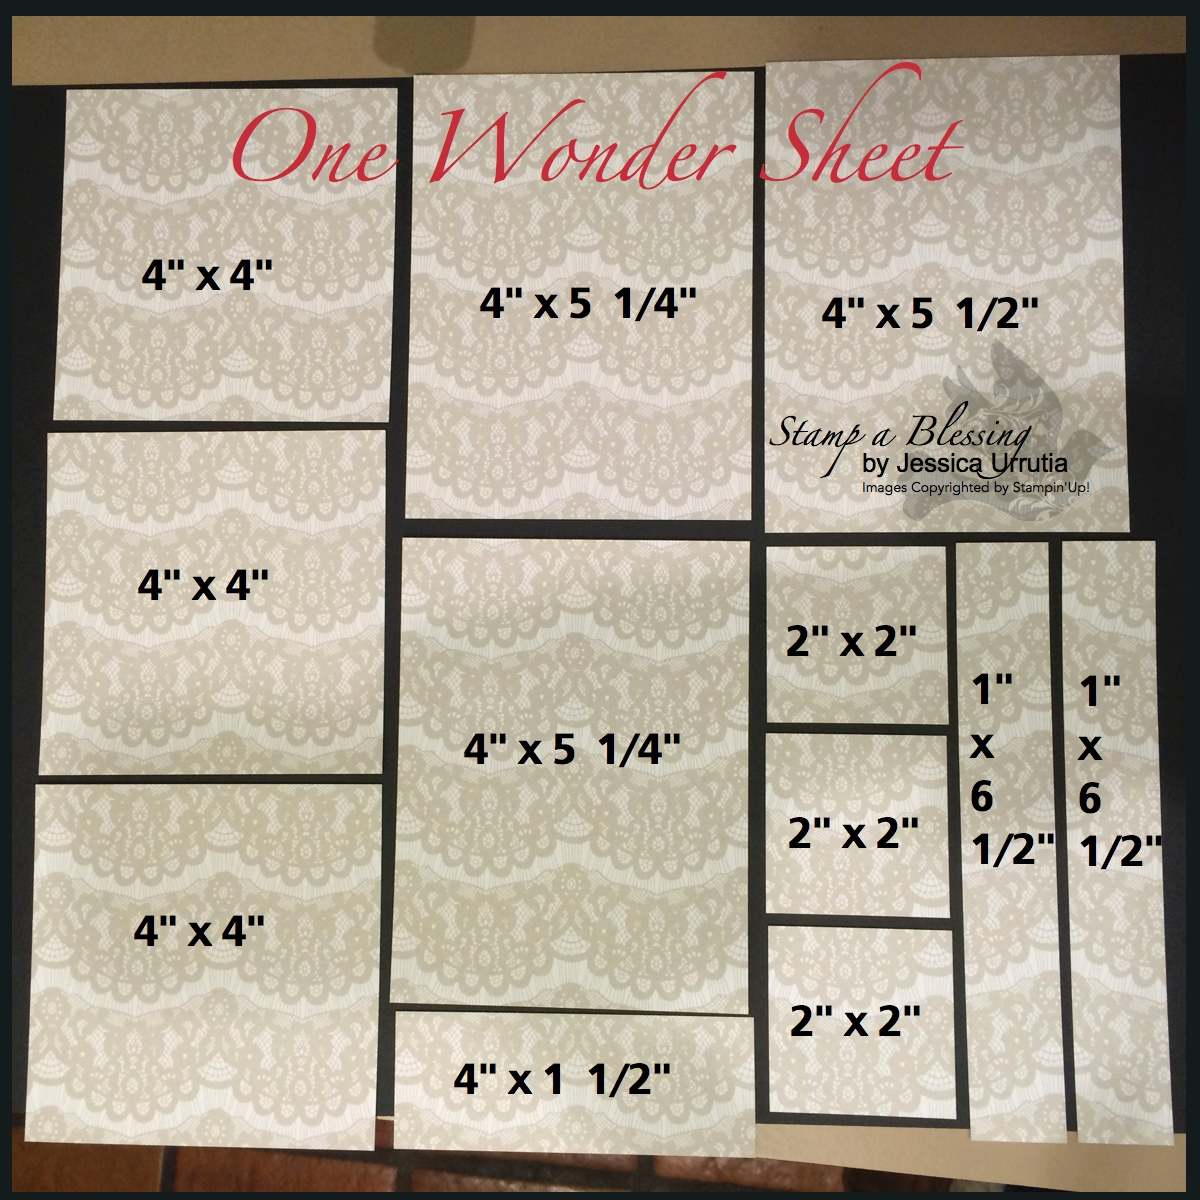 Stamp A Blessing One Wonder Sheet Template 1